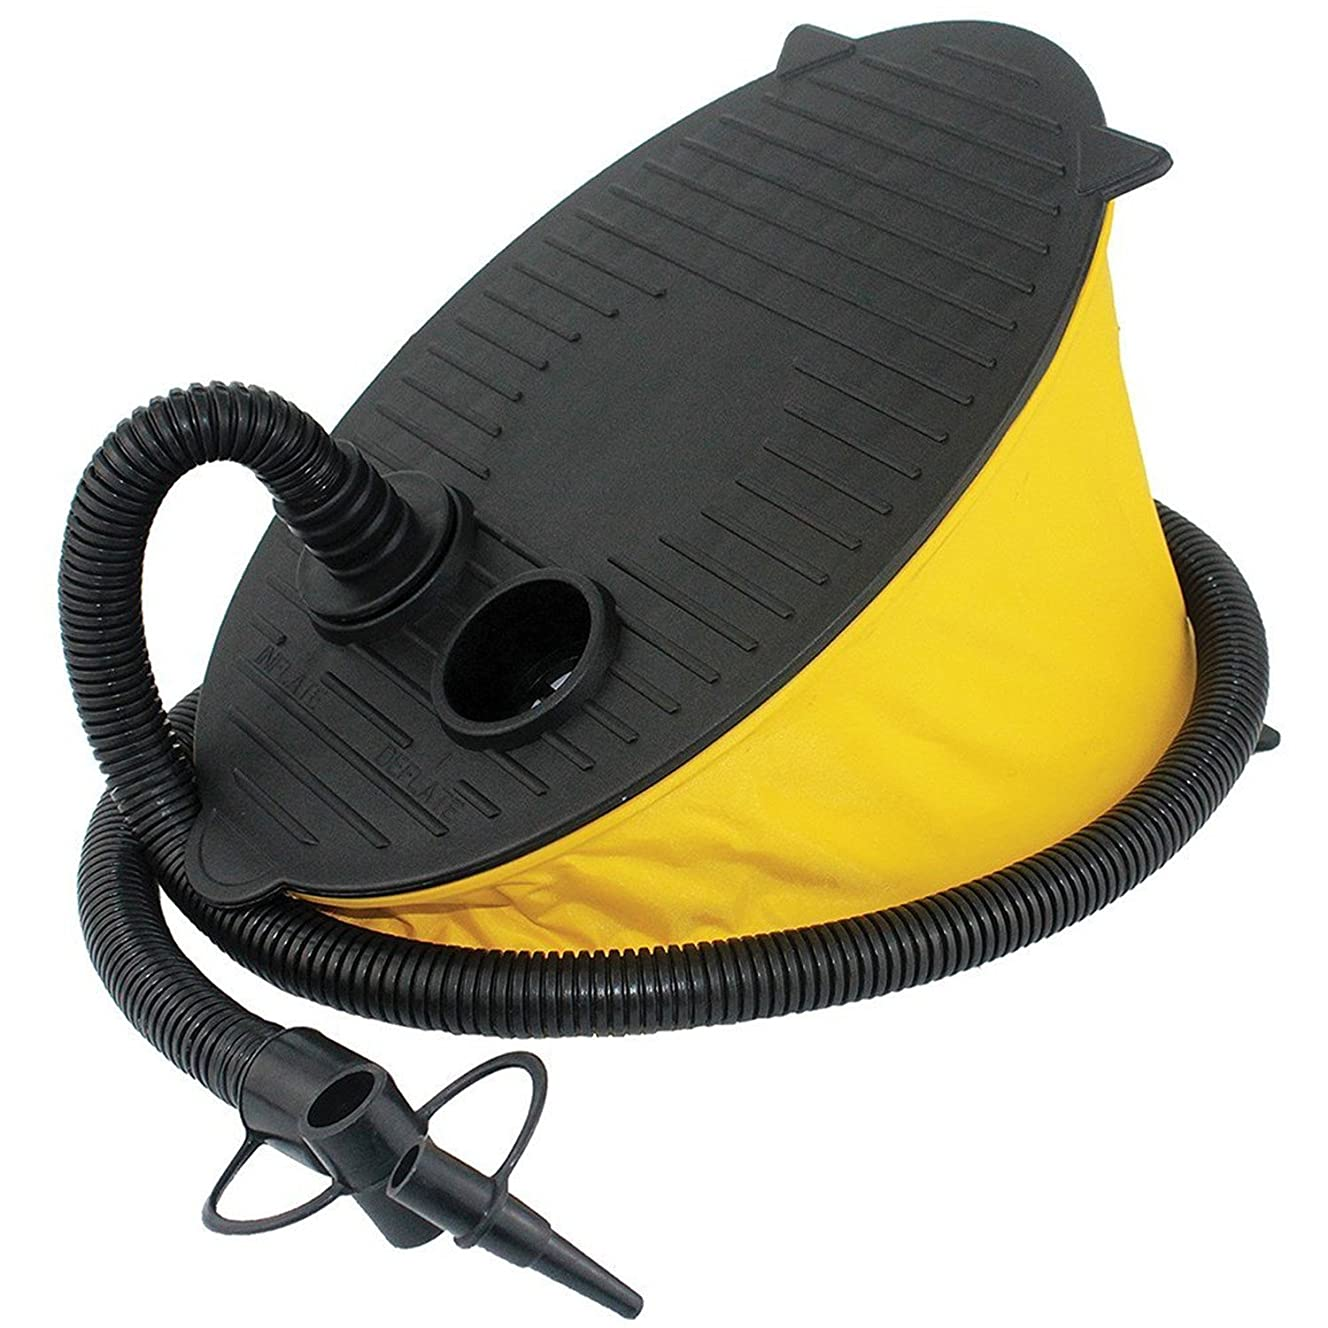 FX Foot Air Pump Inflator for Swimming Ring Inflatable Float Boat or Balloon Airbeds Portable